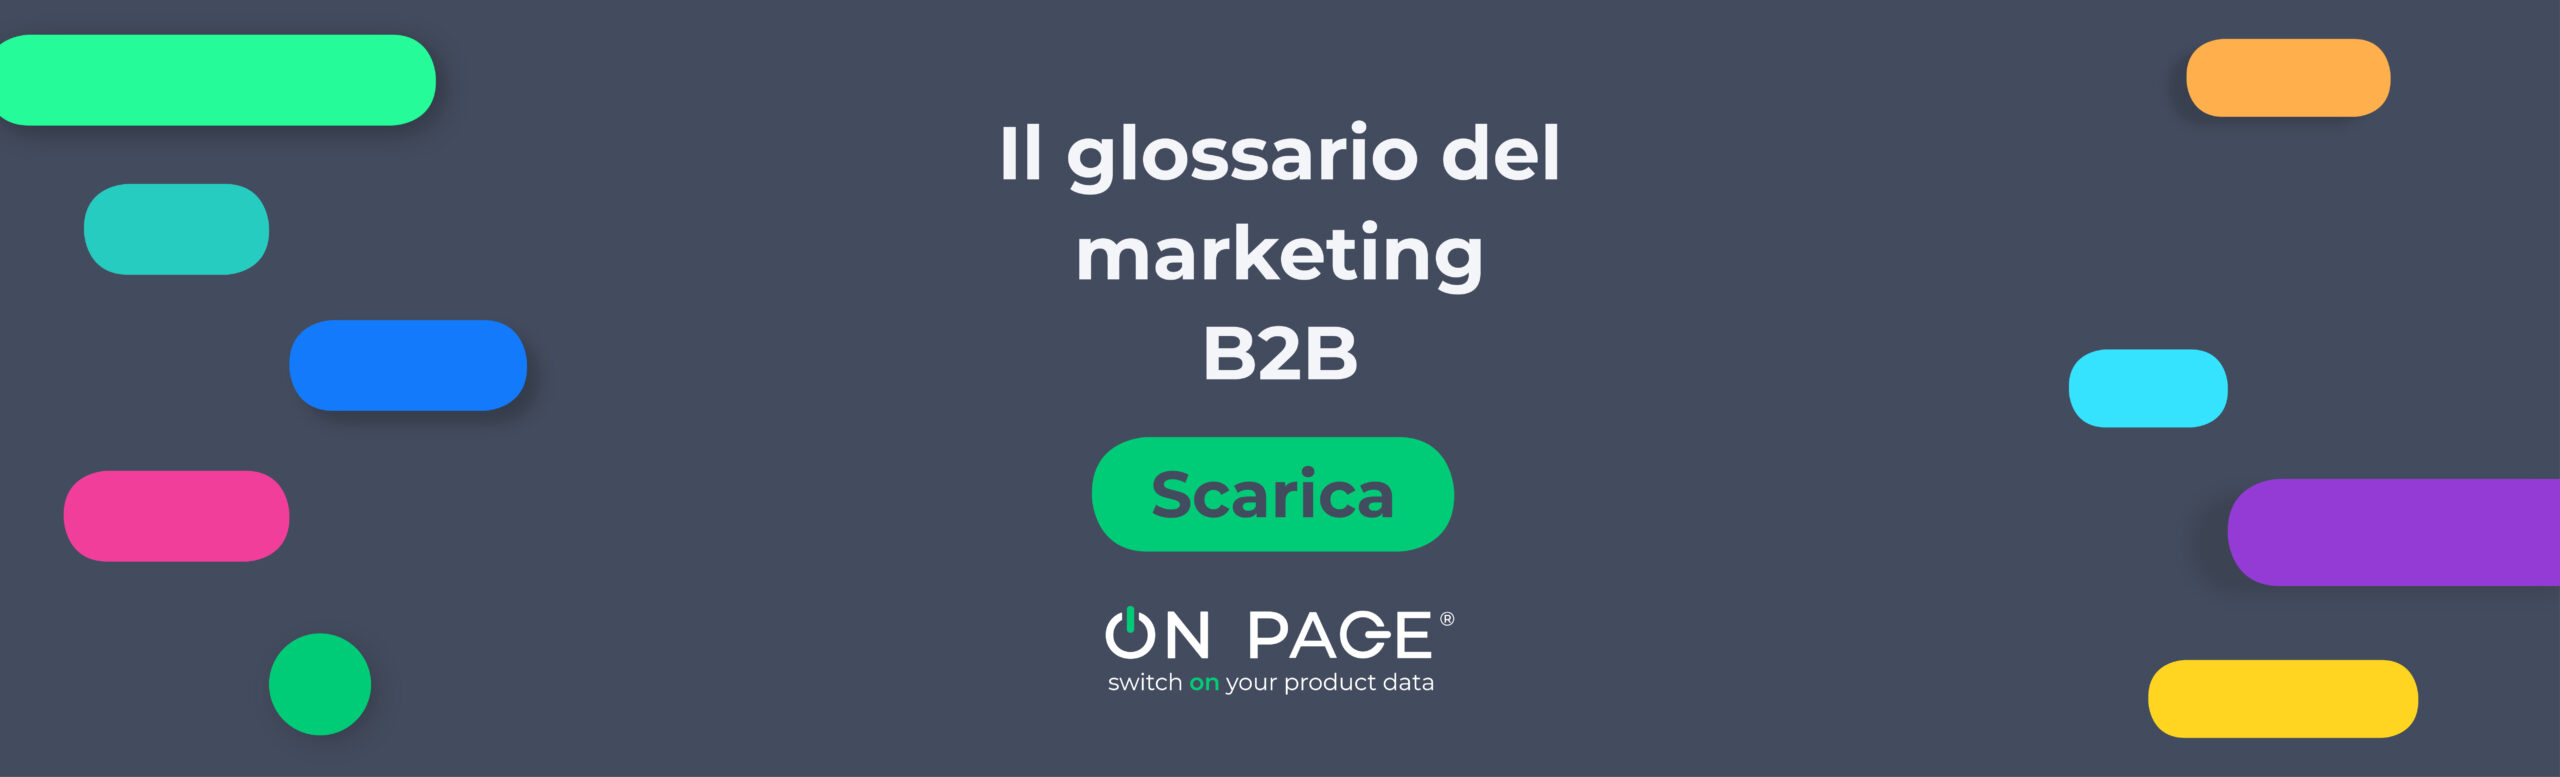 Il glossario del marketing B2B